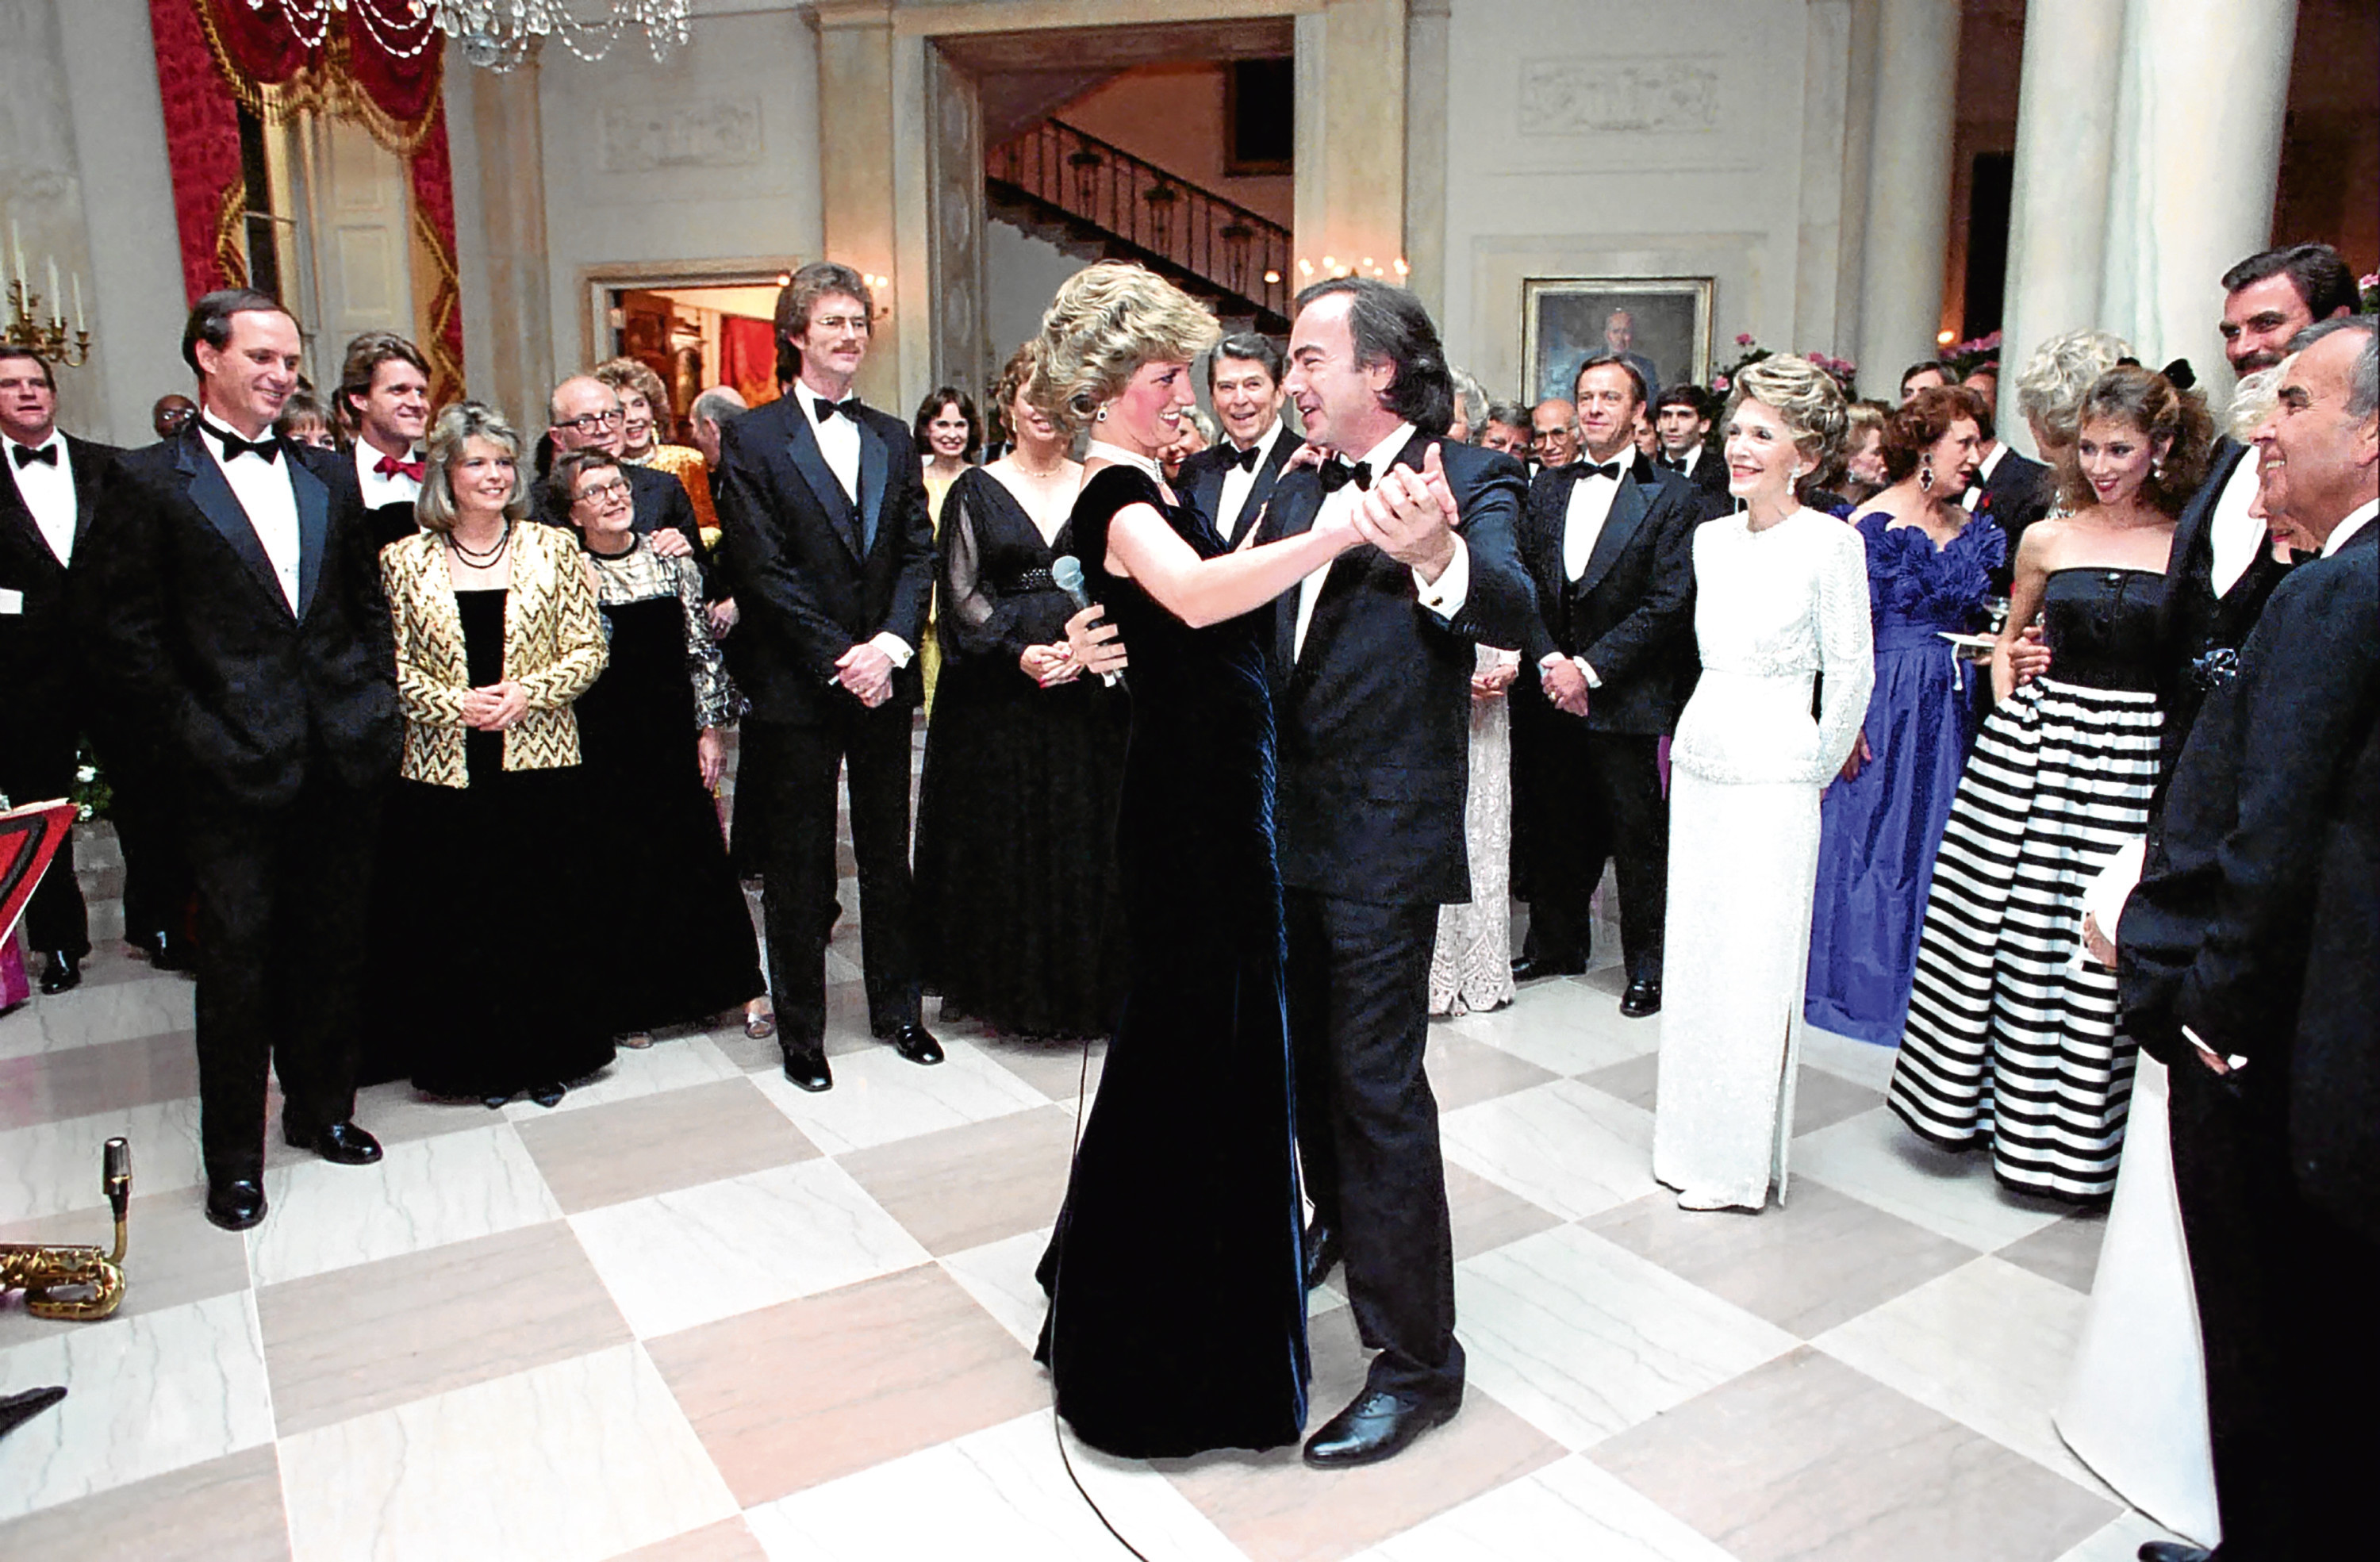 Diana, Princess of Wales dances with singer Neil Diamond during a White House Gala Dinner November 9, 1985 in Washington, DC (Alamy)